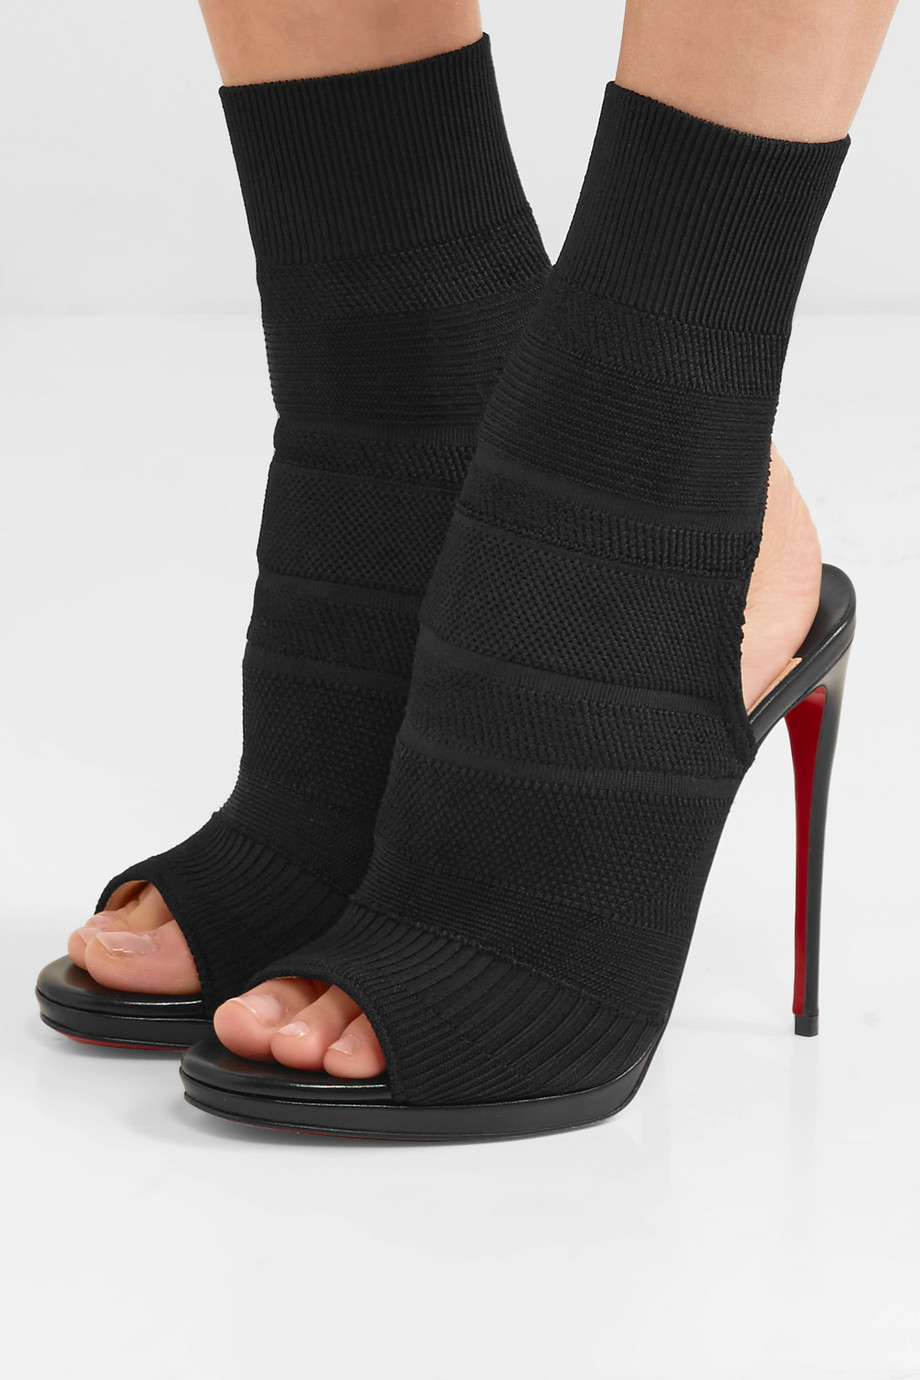 Sock Ankle Boots Christian Louboutin buy Sock Ankle Boots Christian Louboutin internet shop